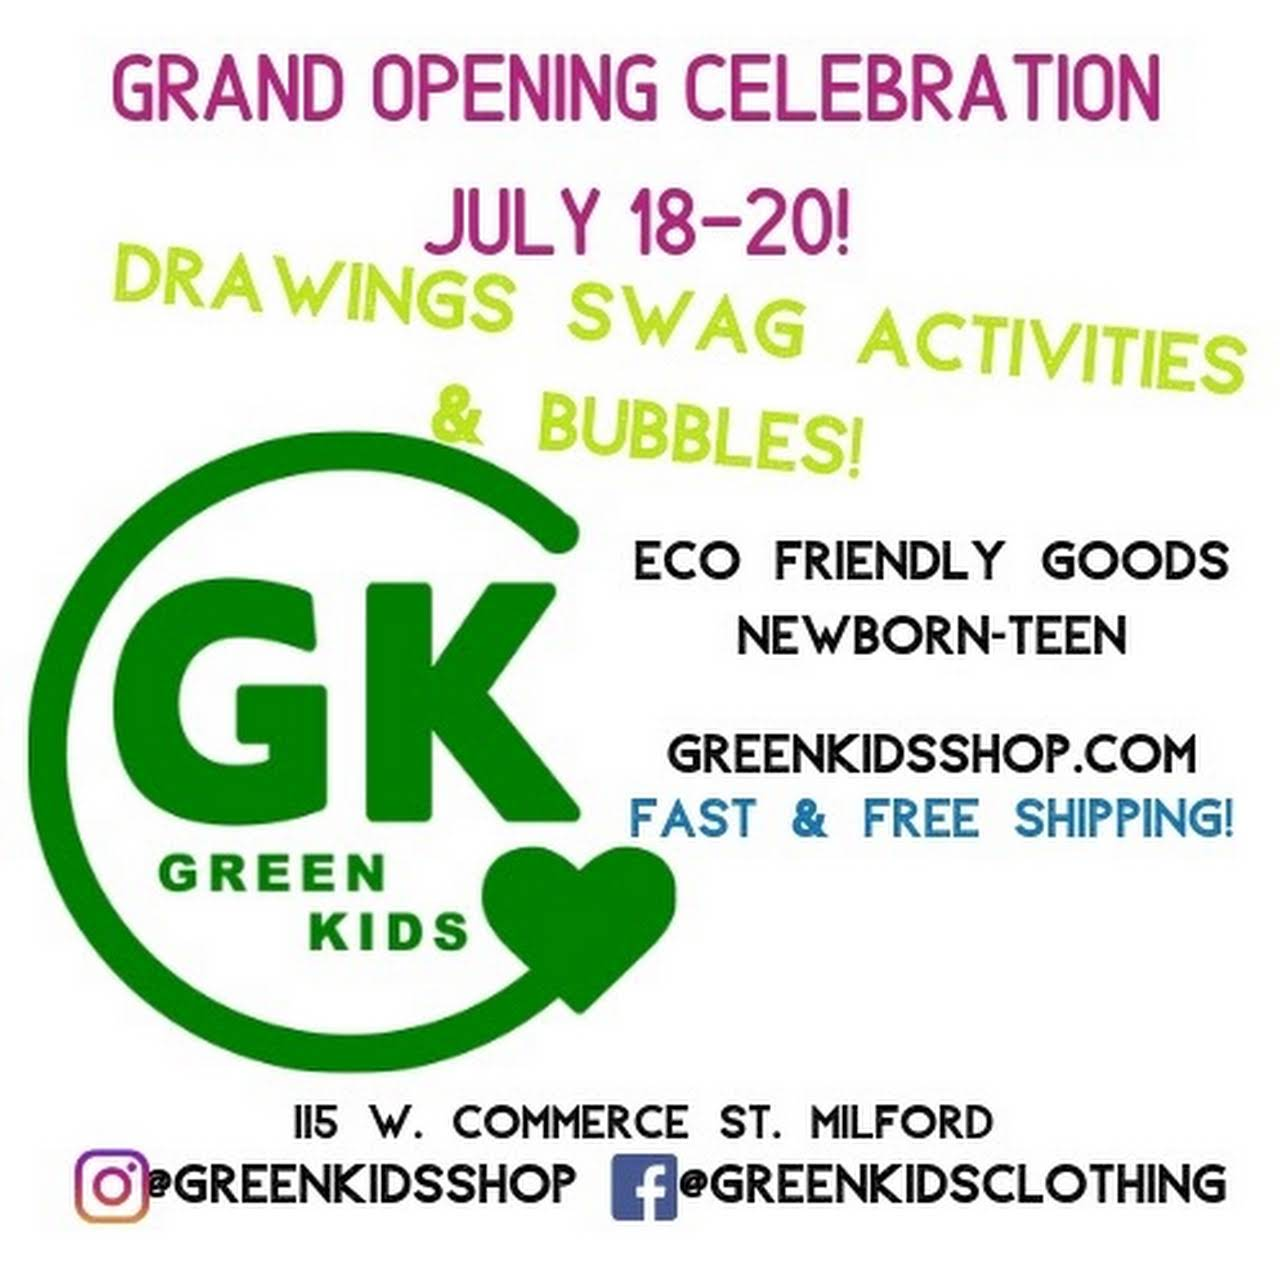 Green Kids - Eco-Friendly Clothes & Accessories, Gifts, Toys